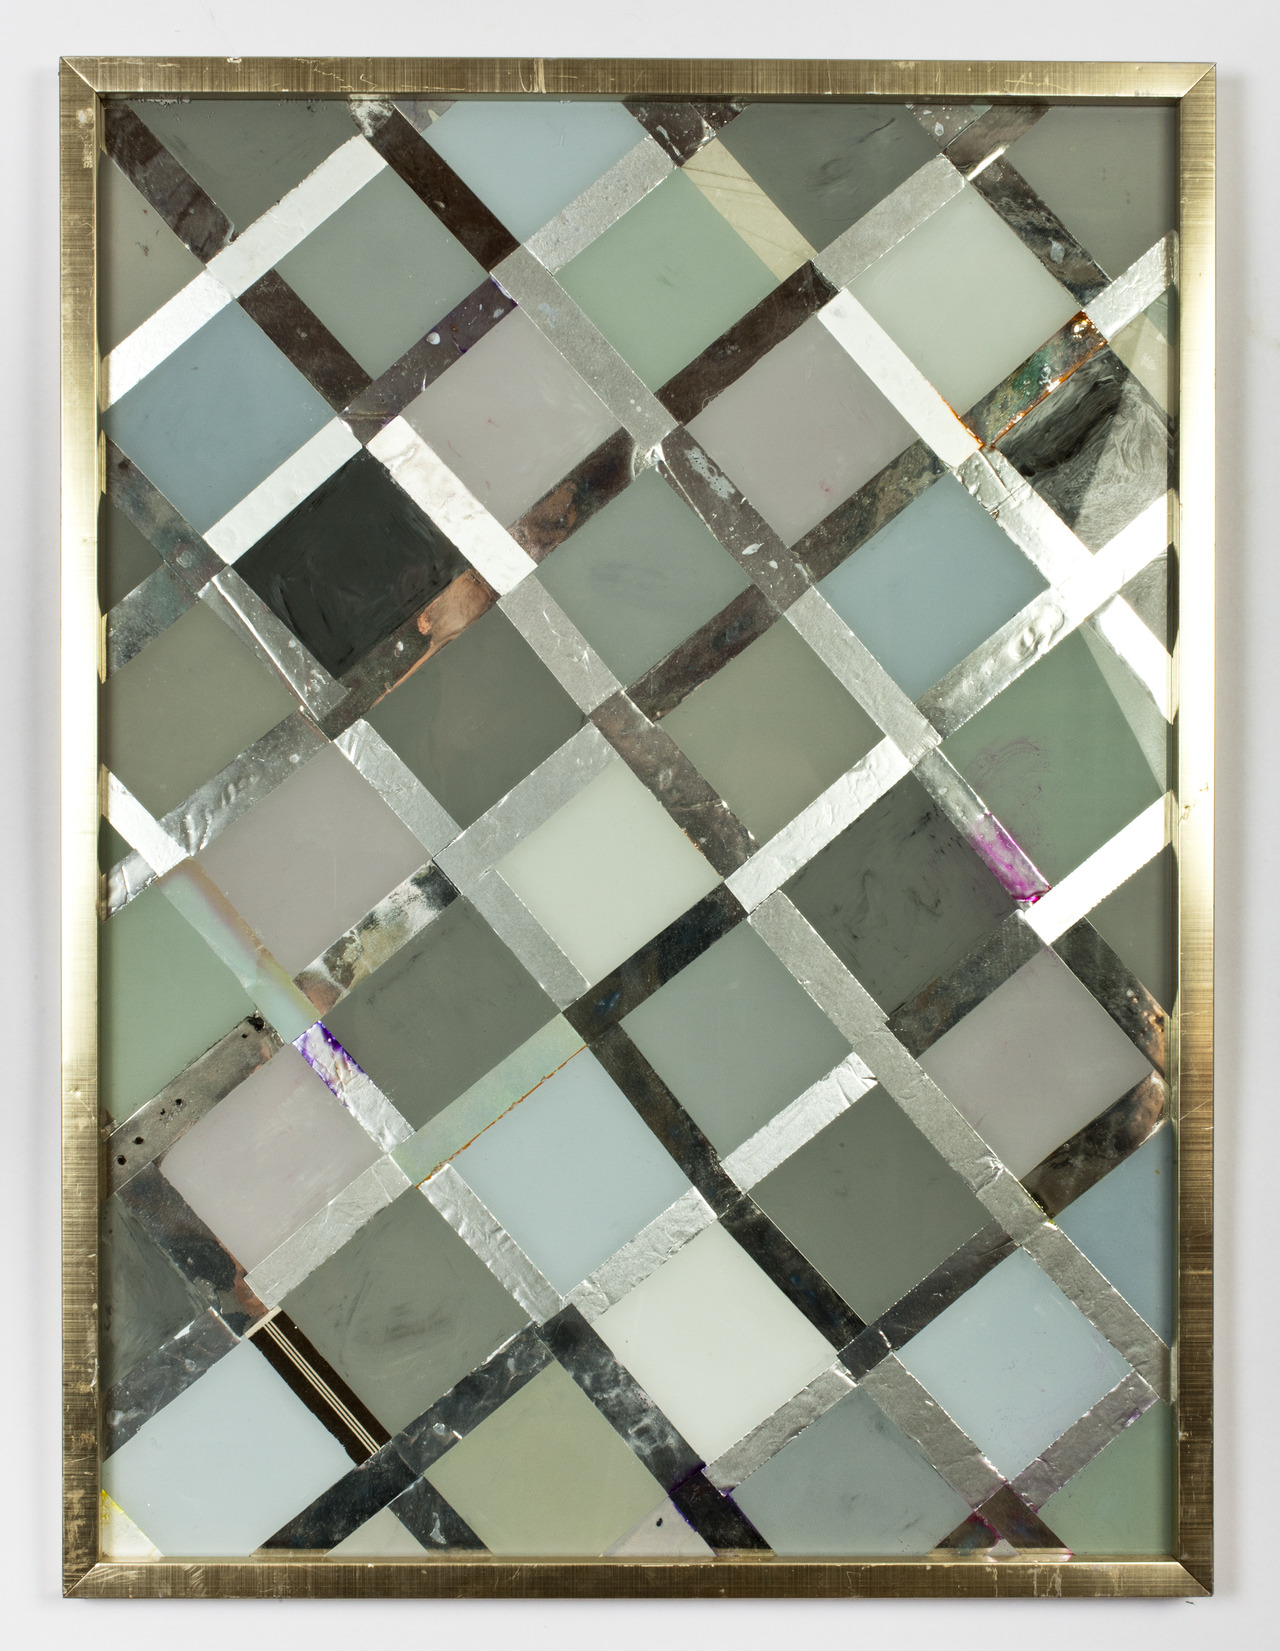 nicecollection: Brian Belott - Refrigerator, reverse glass painting, collaged various foils, 2012